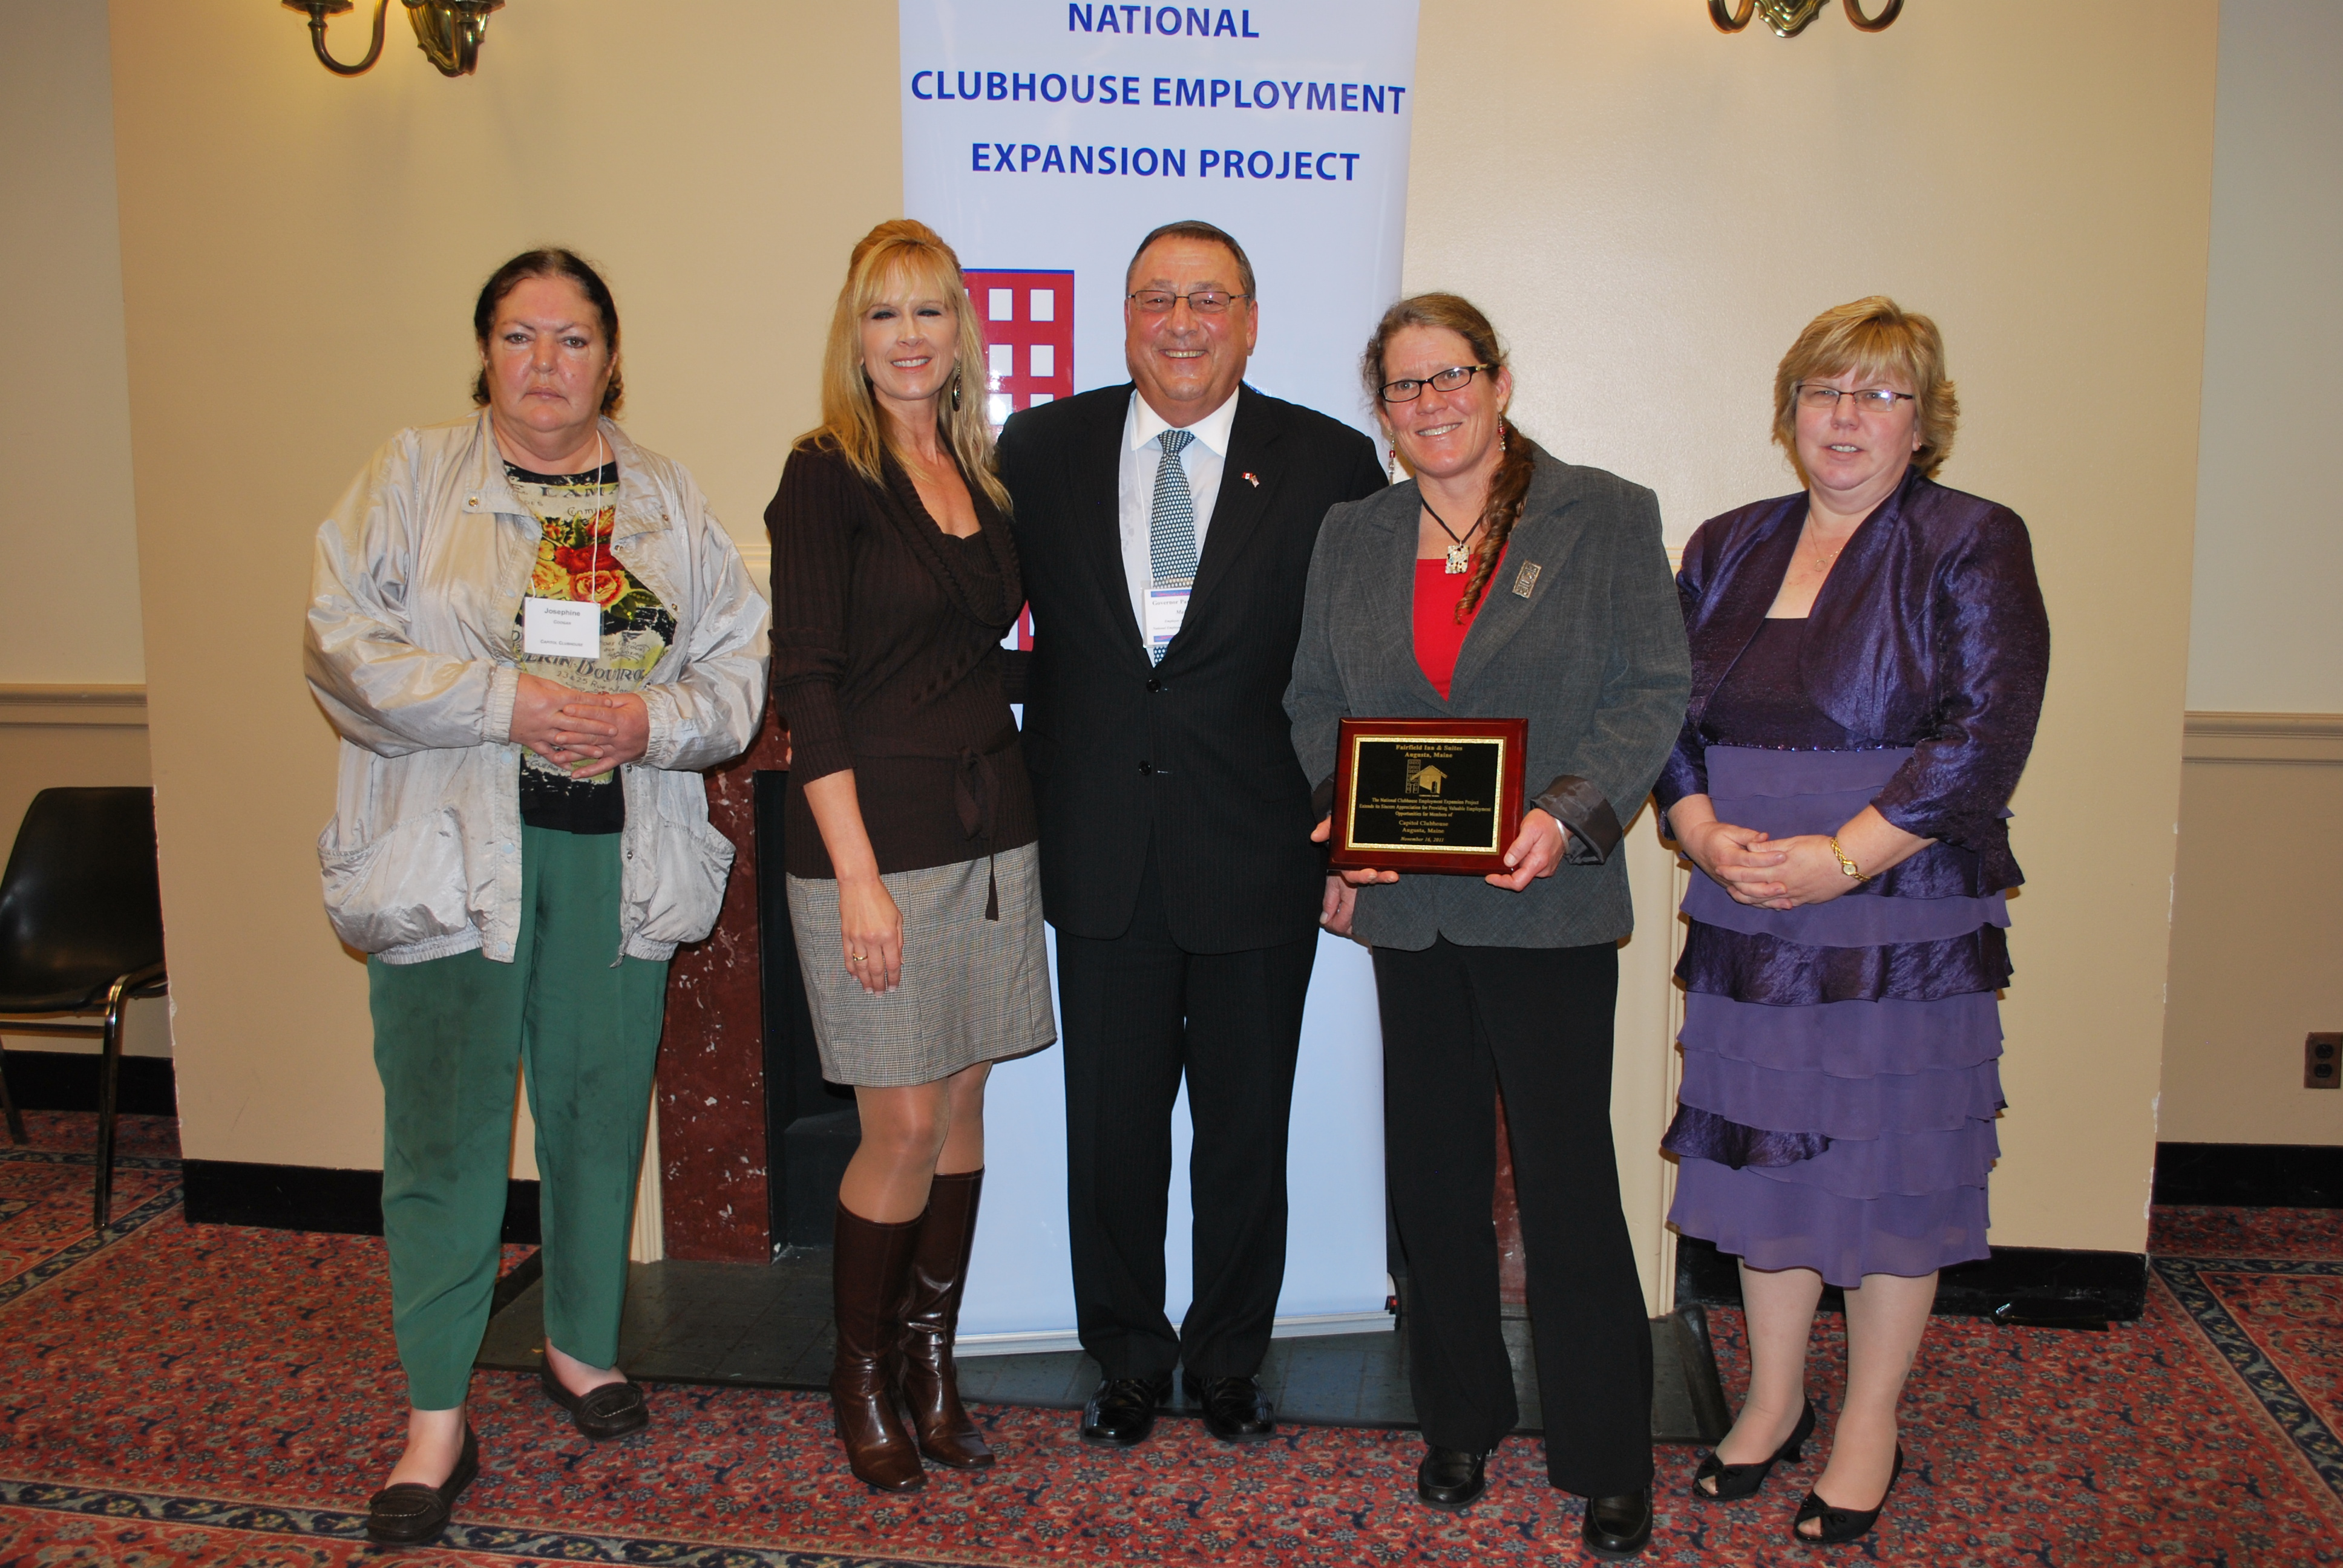 Governor LePage with Capitol Clubhouse members and staff.